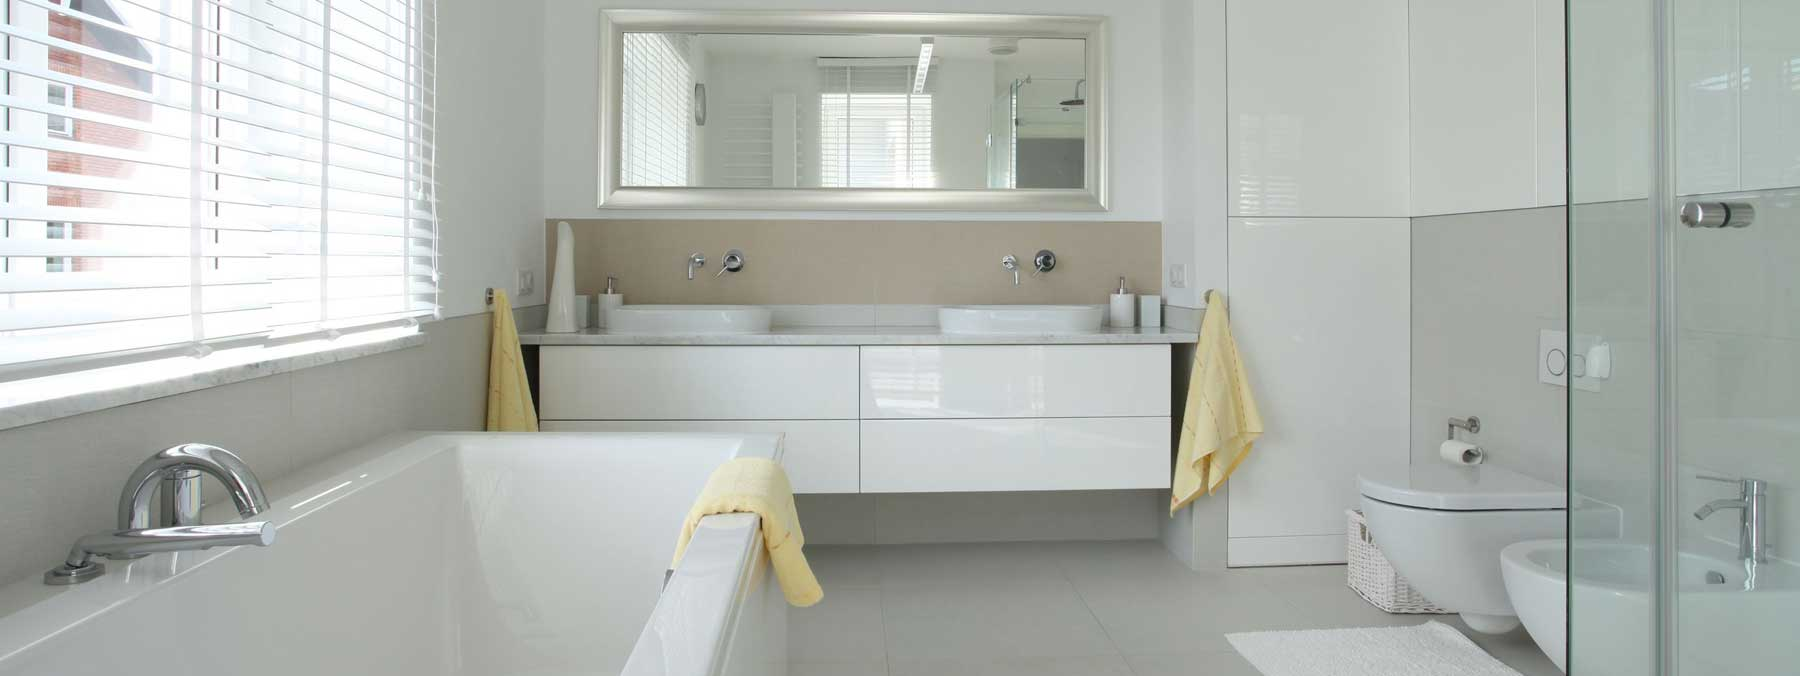 New 50 Bathroom Renovations Sydney Cost Design Ideas Of Bathroom Renovations Sydneyamazing